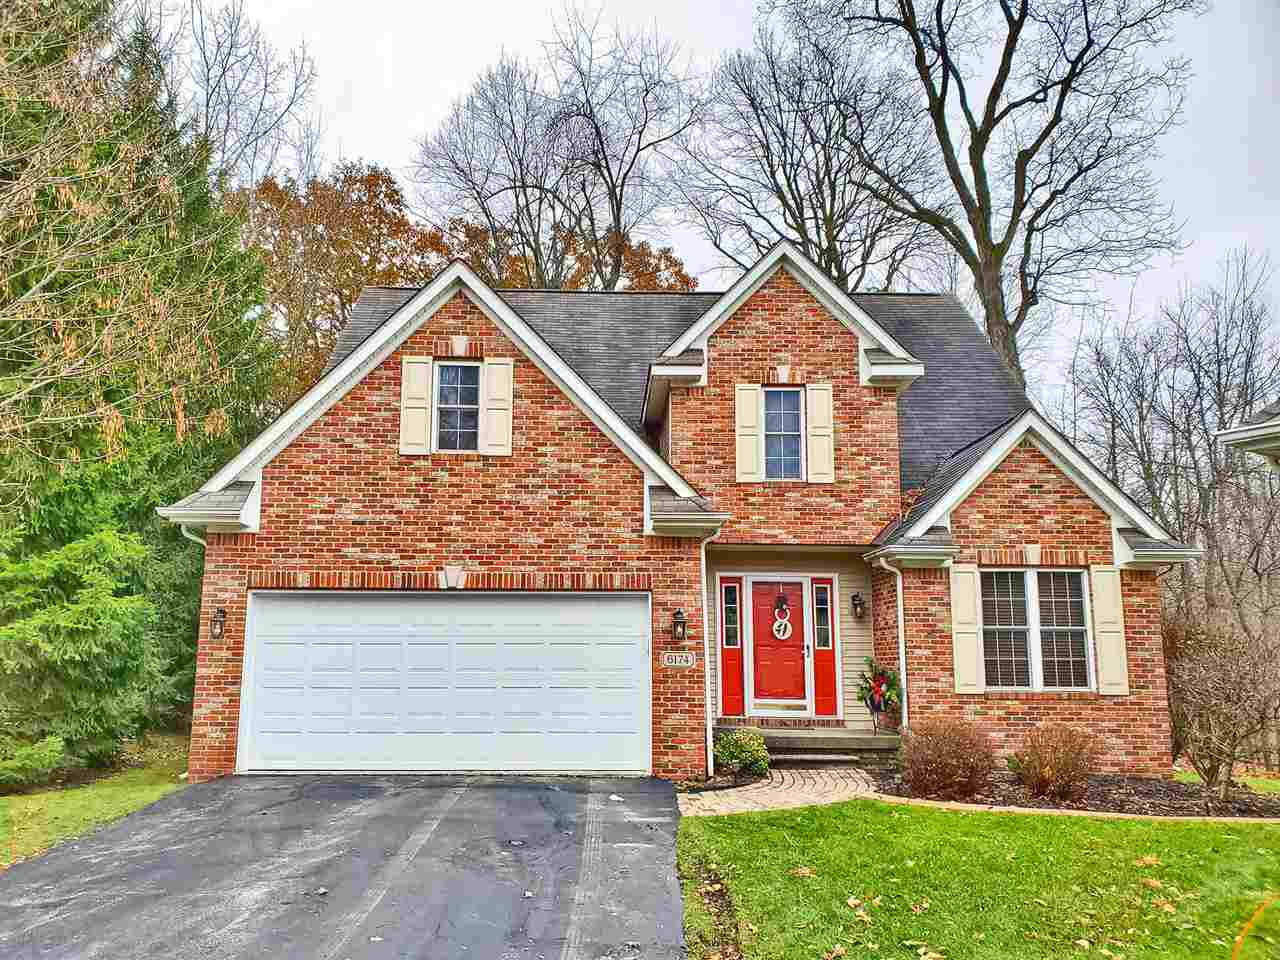 6174 Nature View Ct., Grand Blanc, MI 48439